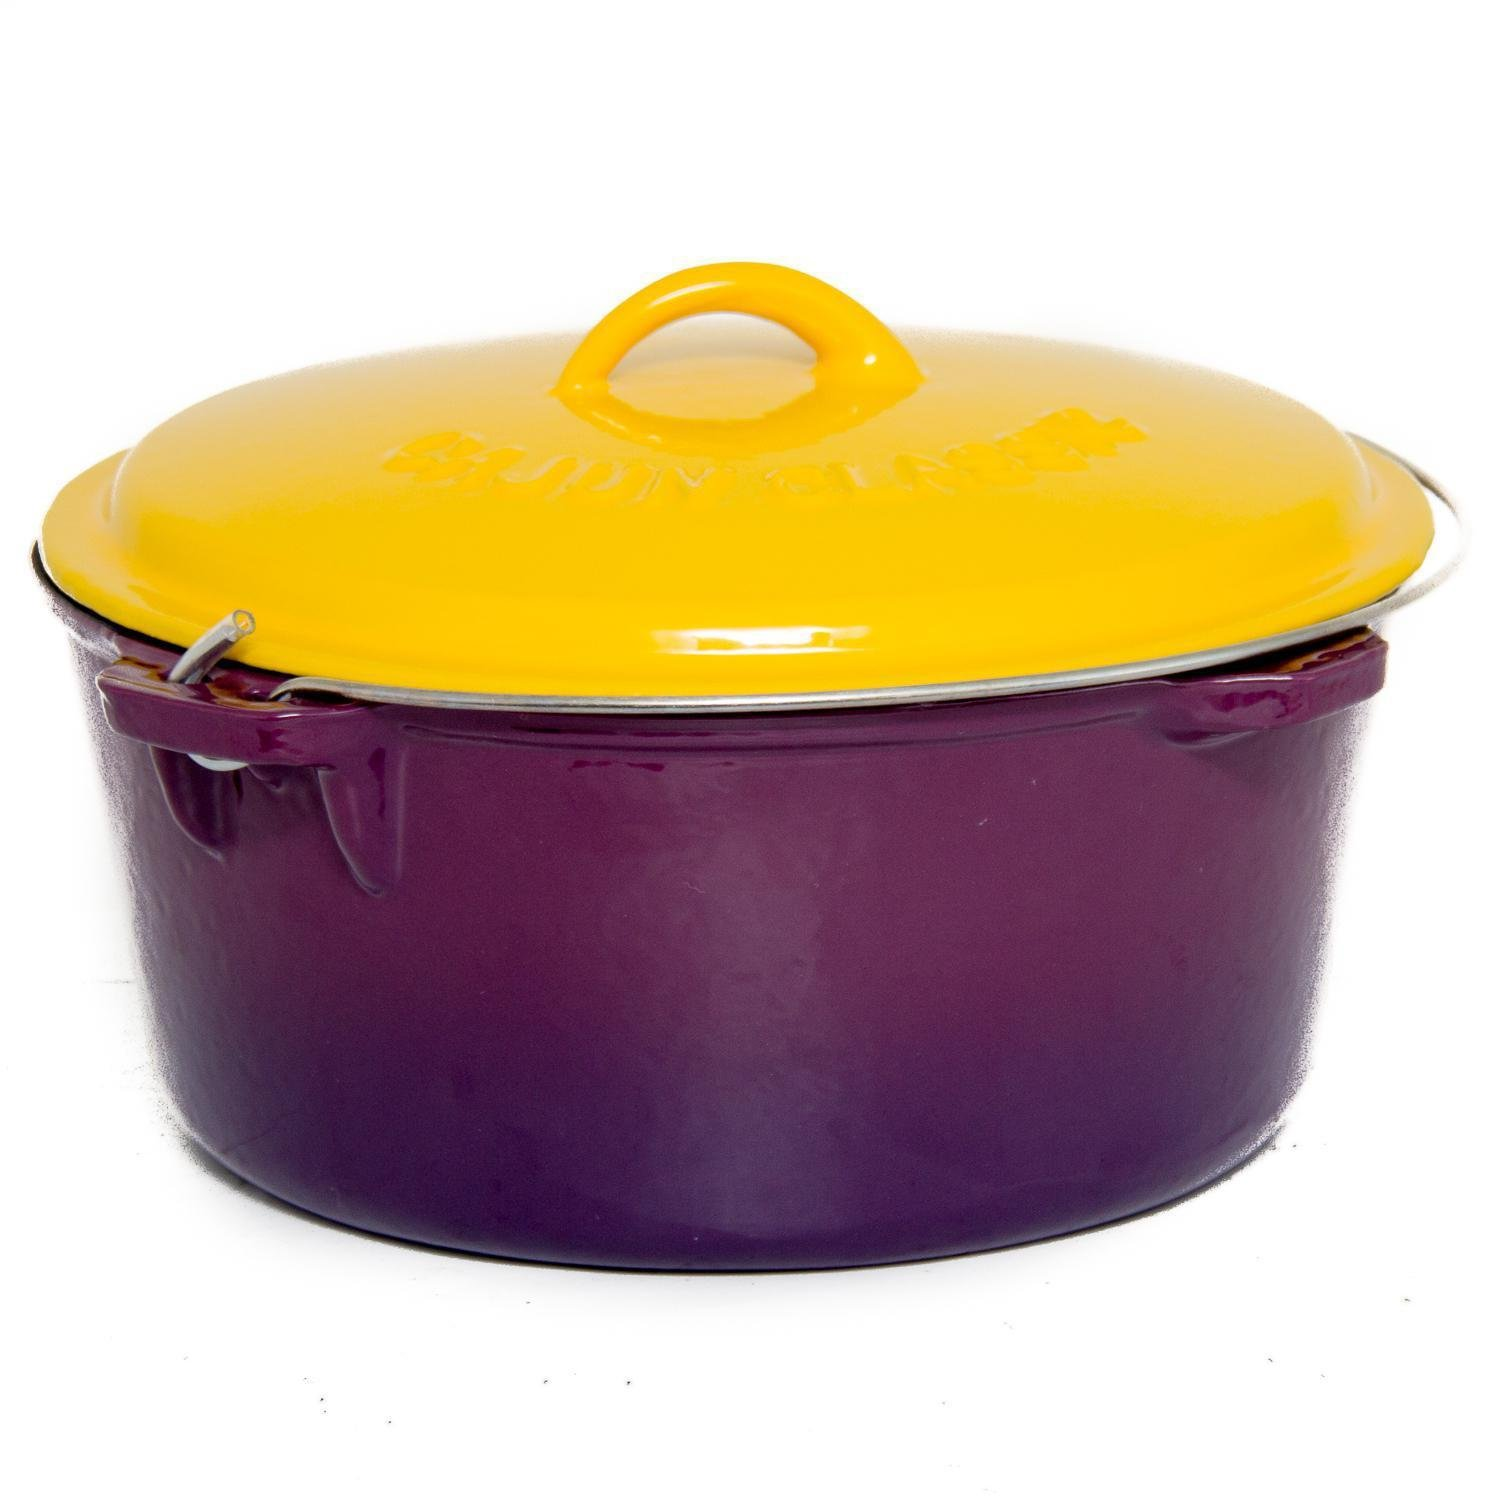 Cajun Classic 12-Quart Enamel Cast Iron Dutch Oven - Purple & Gold - GL10489PG